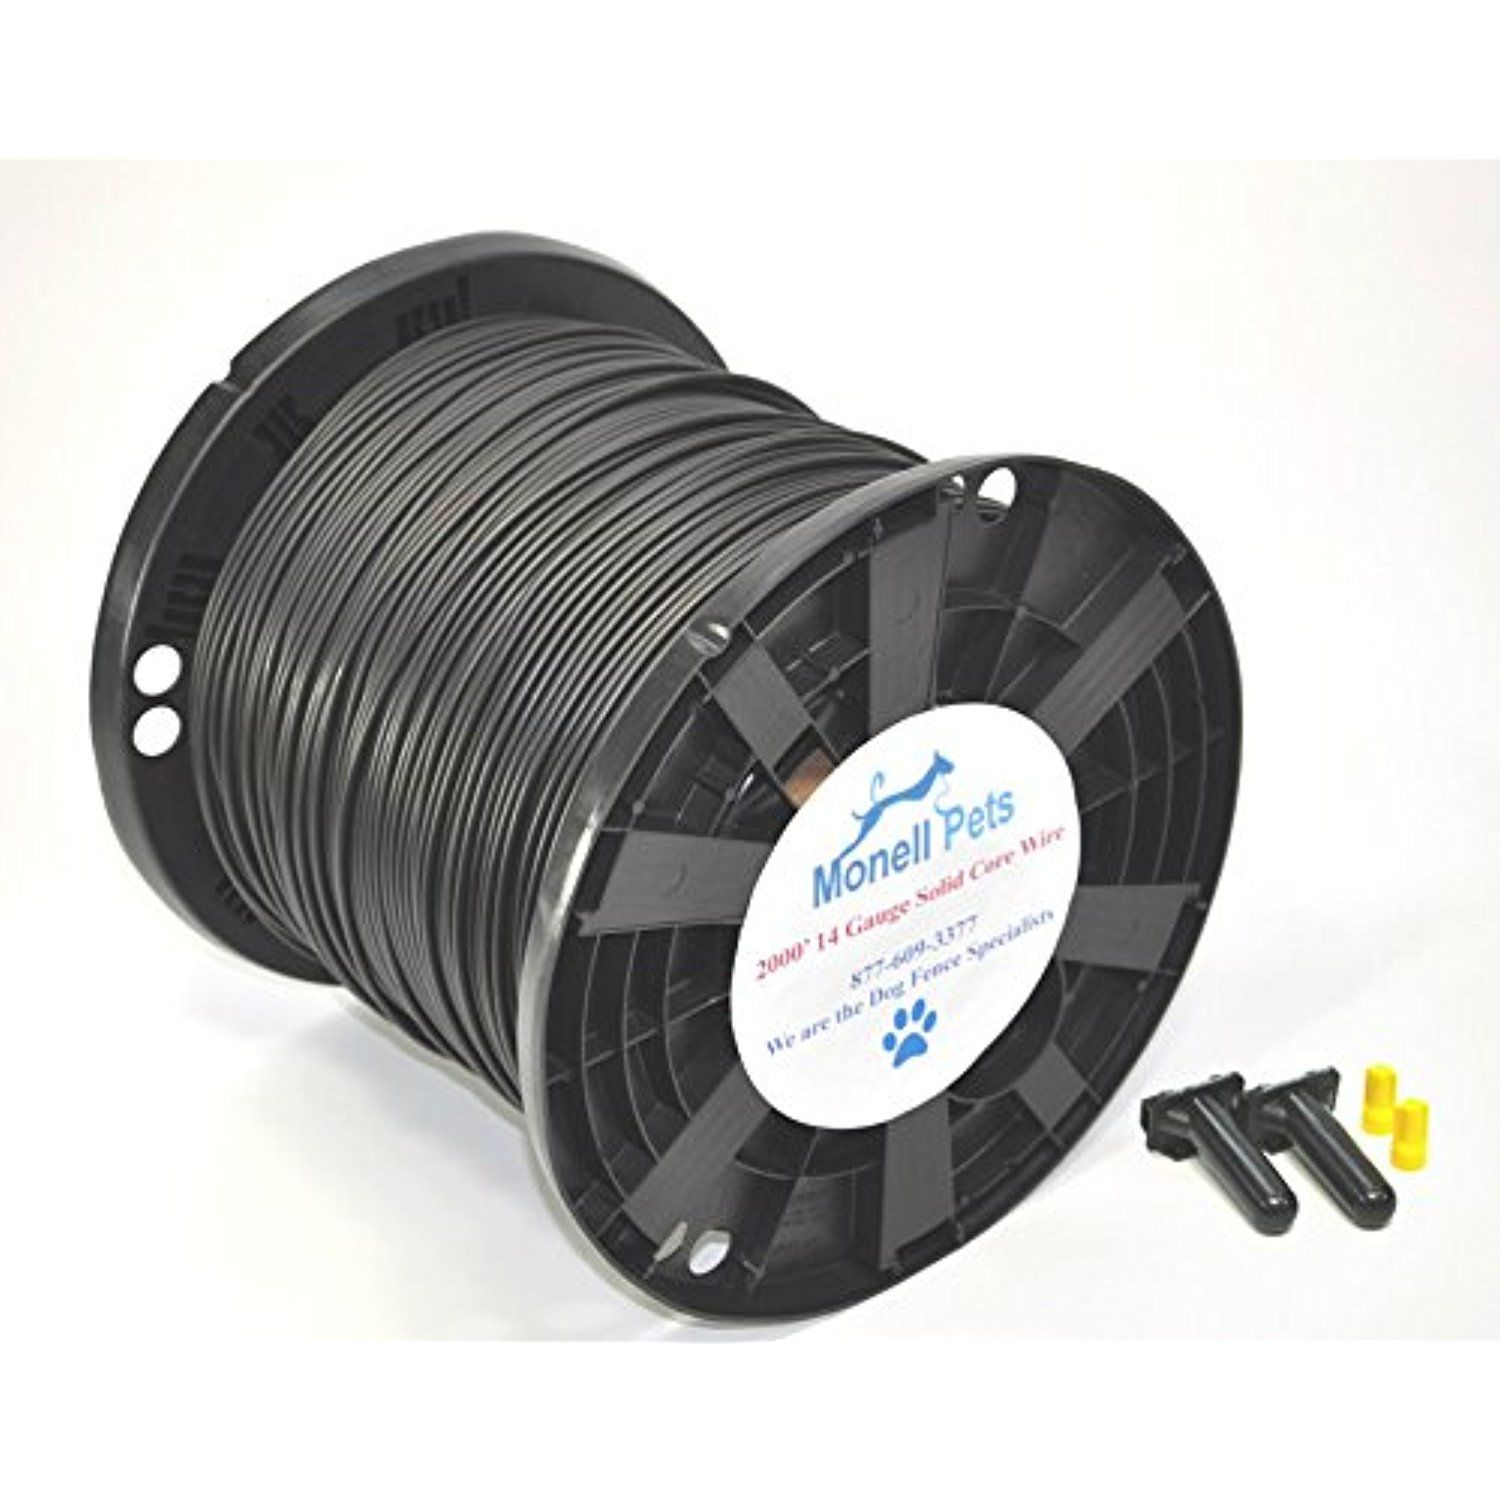 14 Gauge Heavy Duty Superior Pro Dog Fence Wire 2000 Ft Continuous Wire Check Out The Image By Visiting The Lin With Images Dog Fence Wireless Dog Fence Dog Conditioner